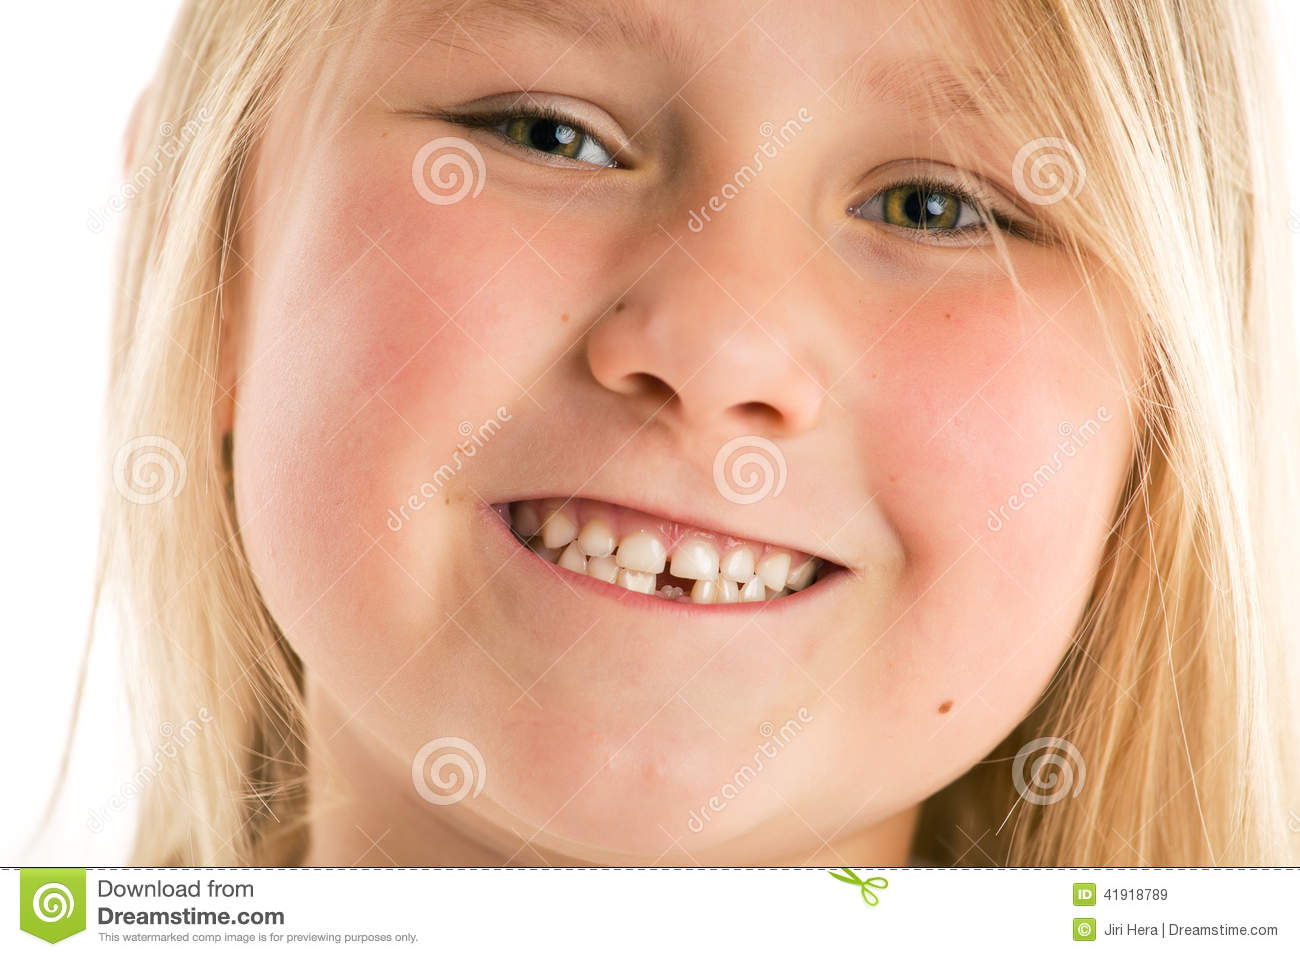 Girl Missing Teeth Open Mouth Vector Illustration